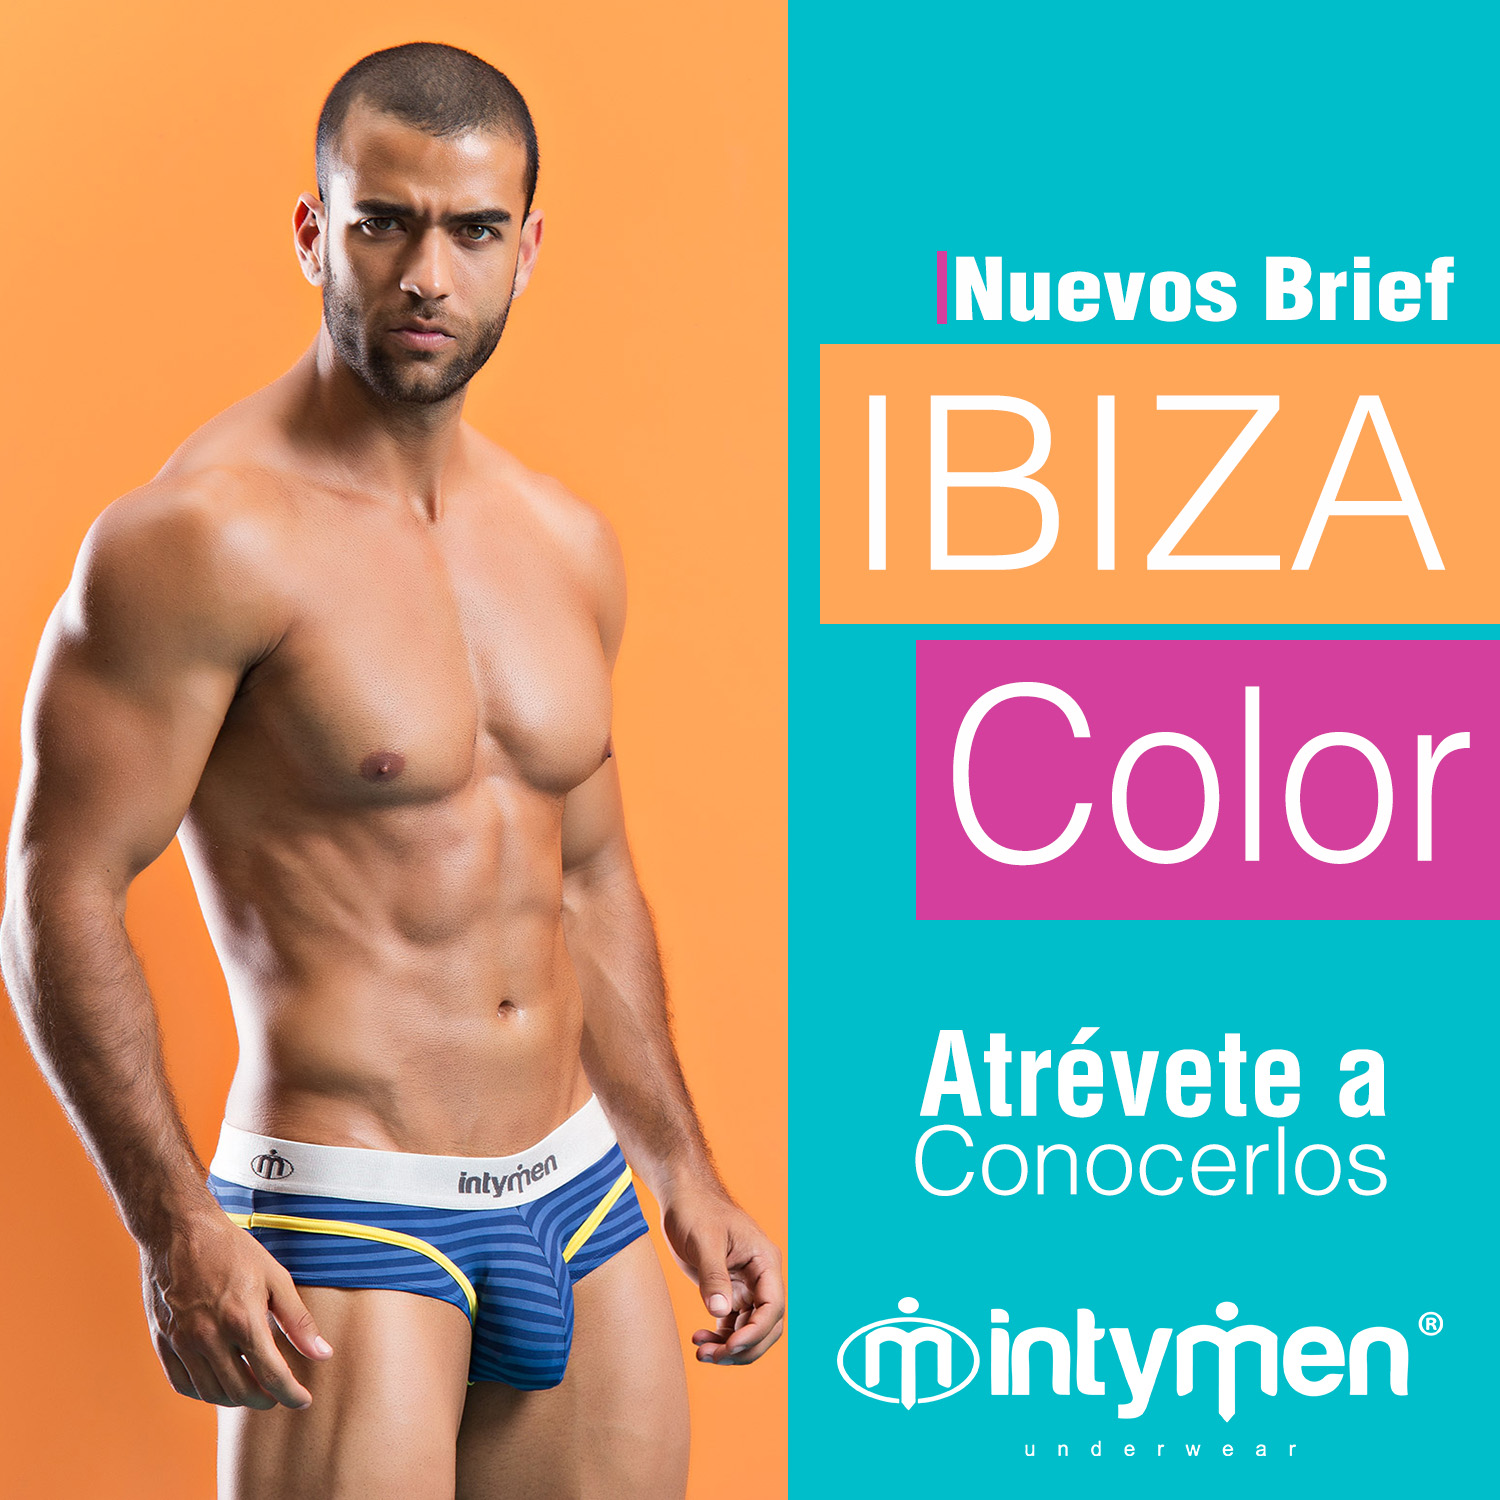 Ibiza Brief-Boxer Brief, ropa interior masculina medellin